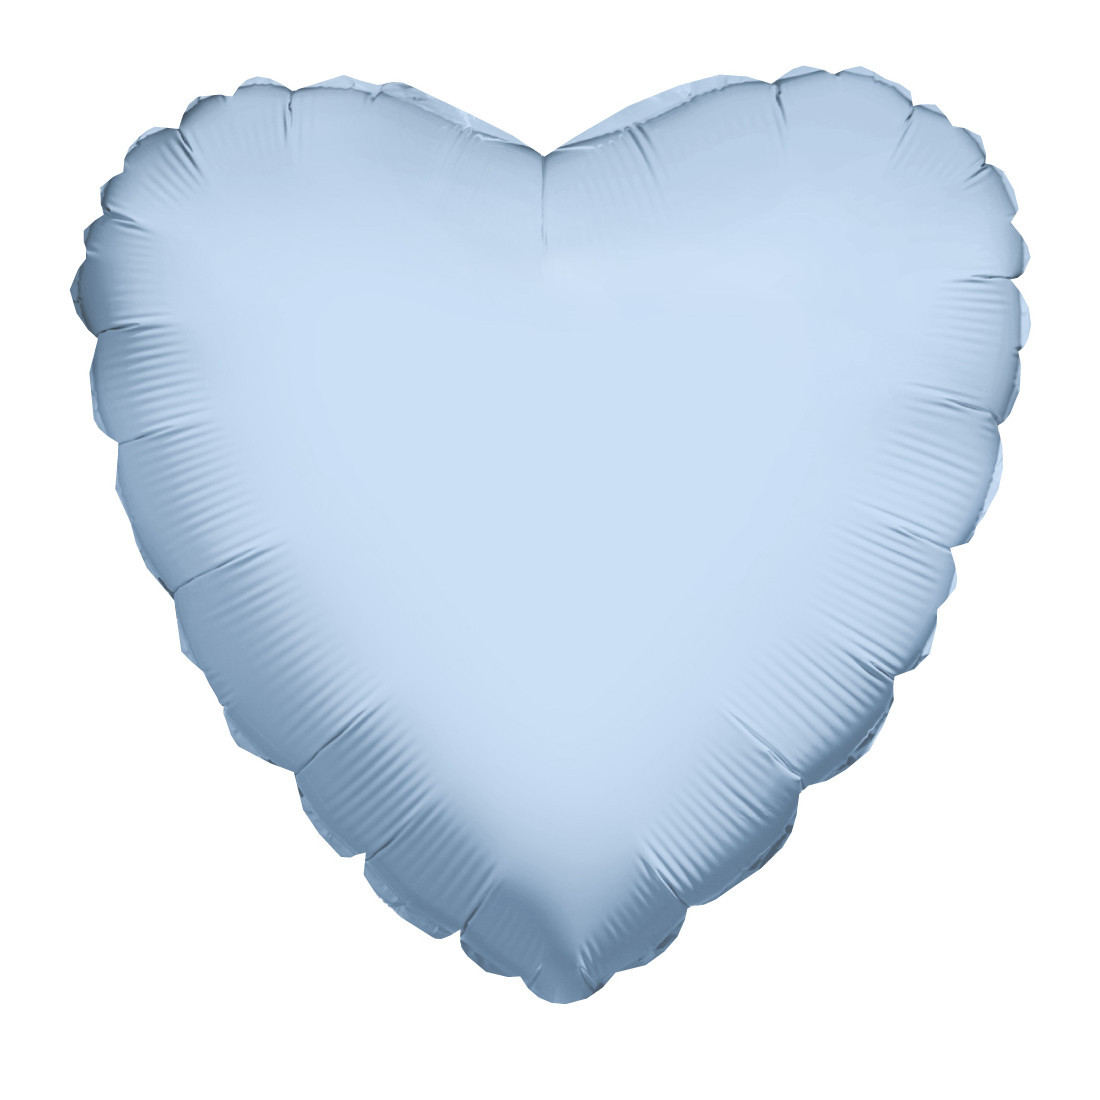 HERZ HELLBLAU 46 CM / HEART LIGHT BLUE 18""